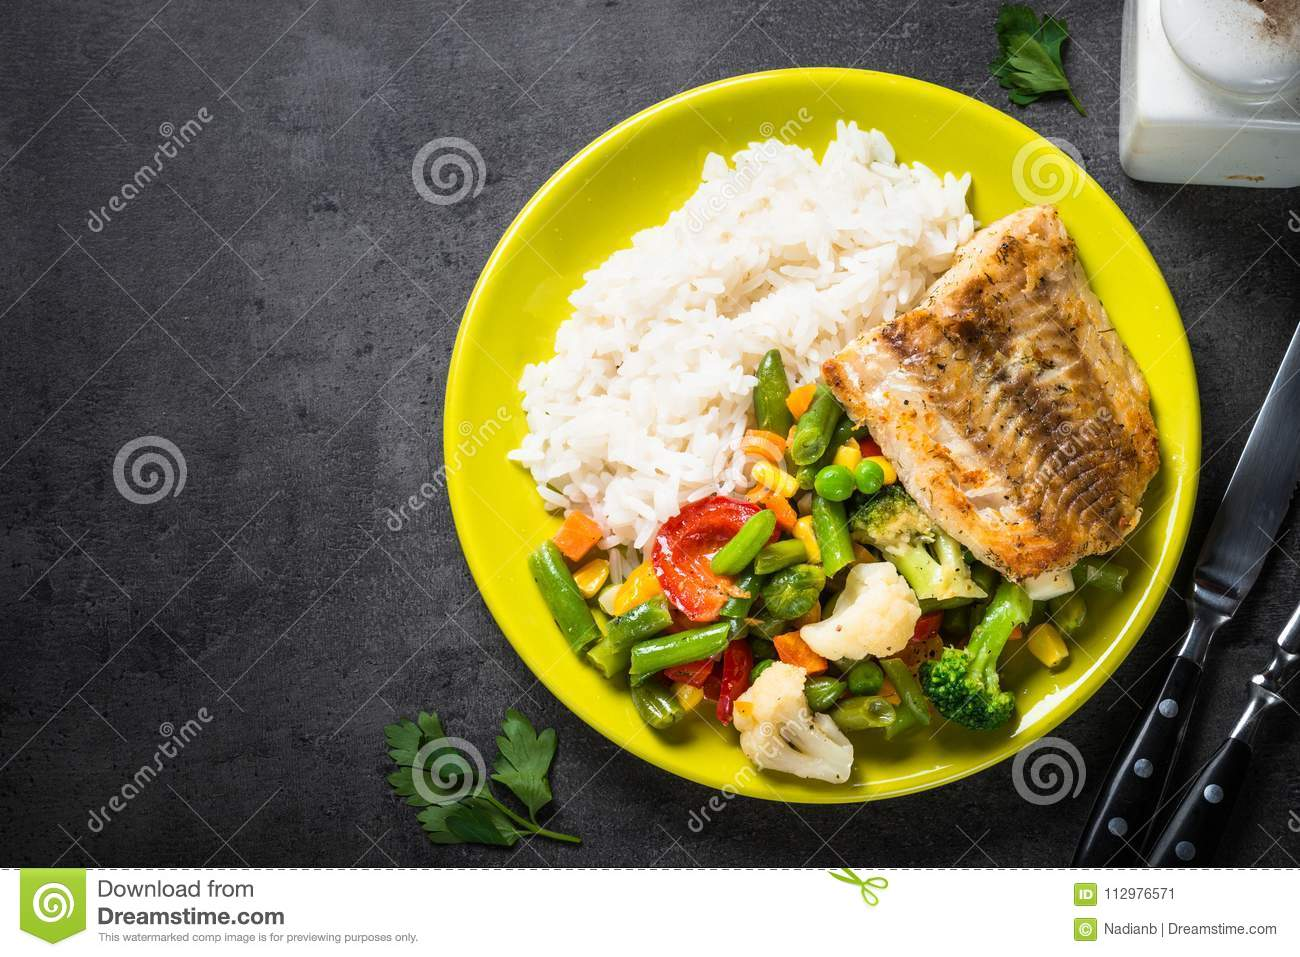 Sea fish, rise and vegetables.